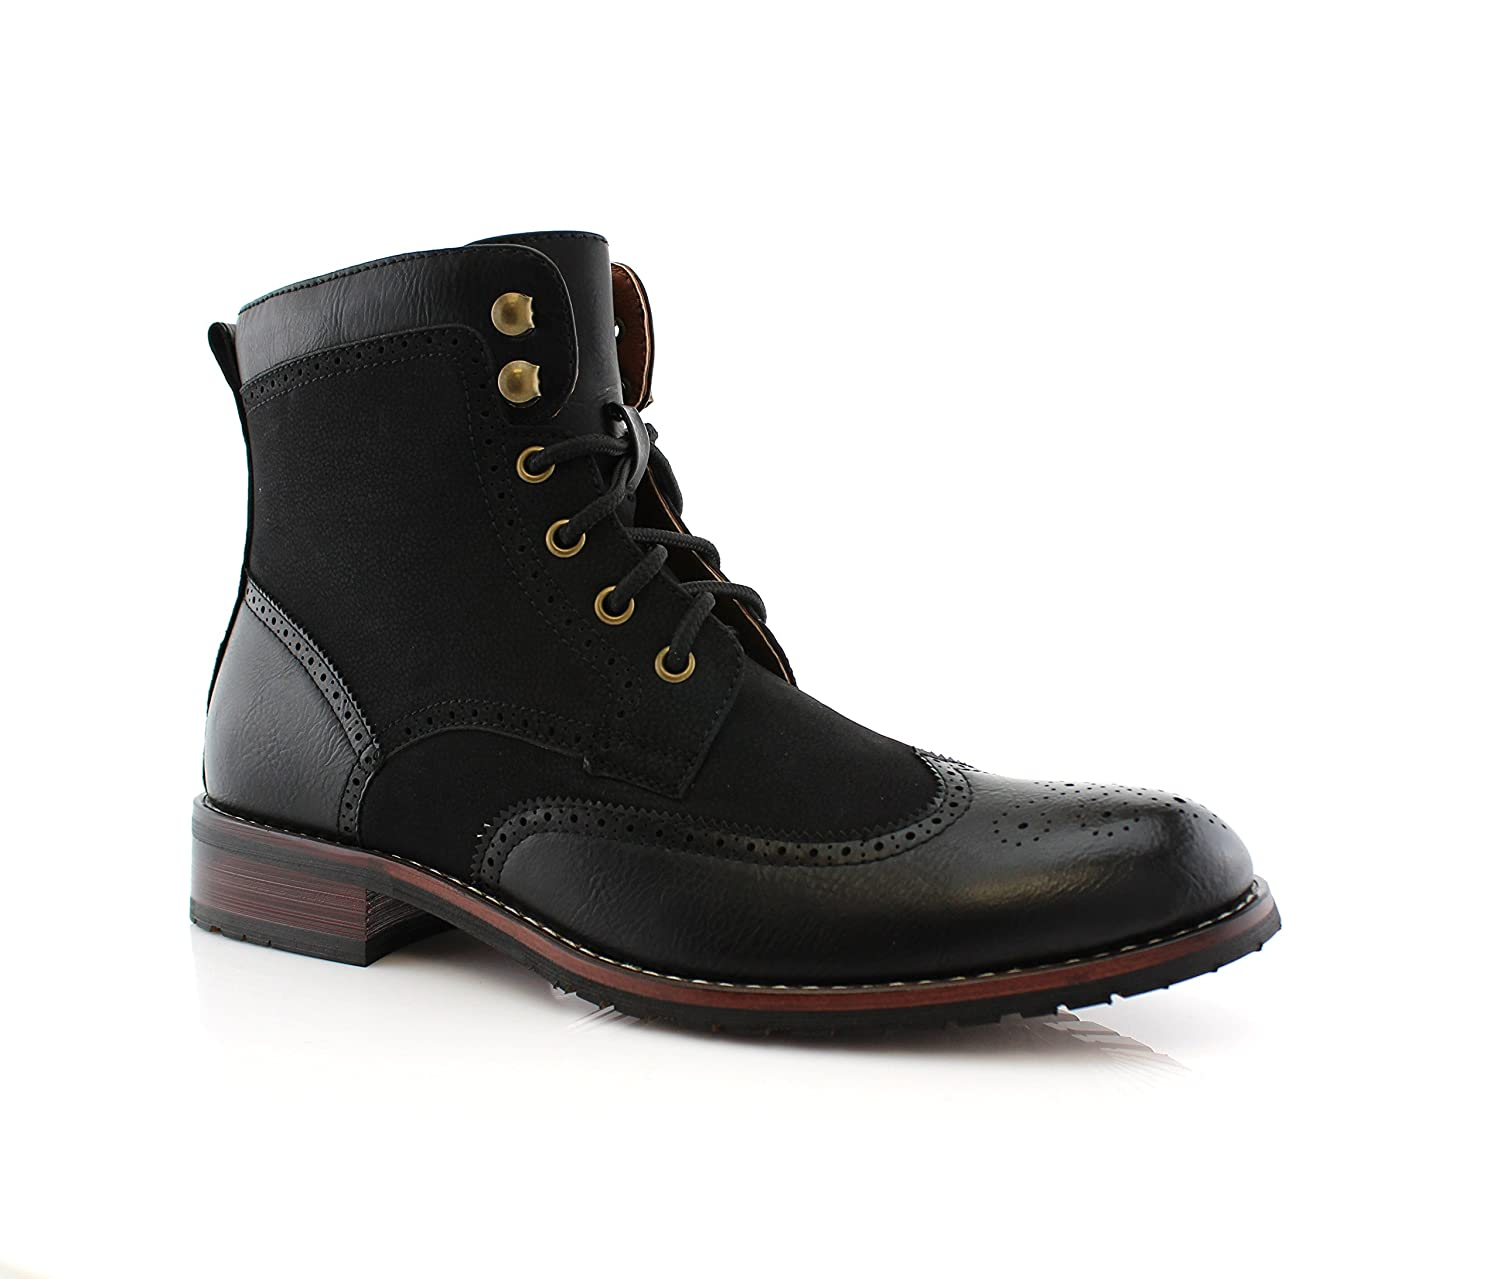 Mens Vintage Style Shoes| Retro Classic Shoes Polar Fox JONAH MPX808567 $37.99 AT vintagedancer.com